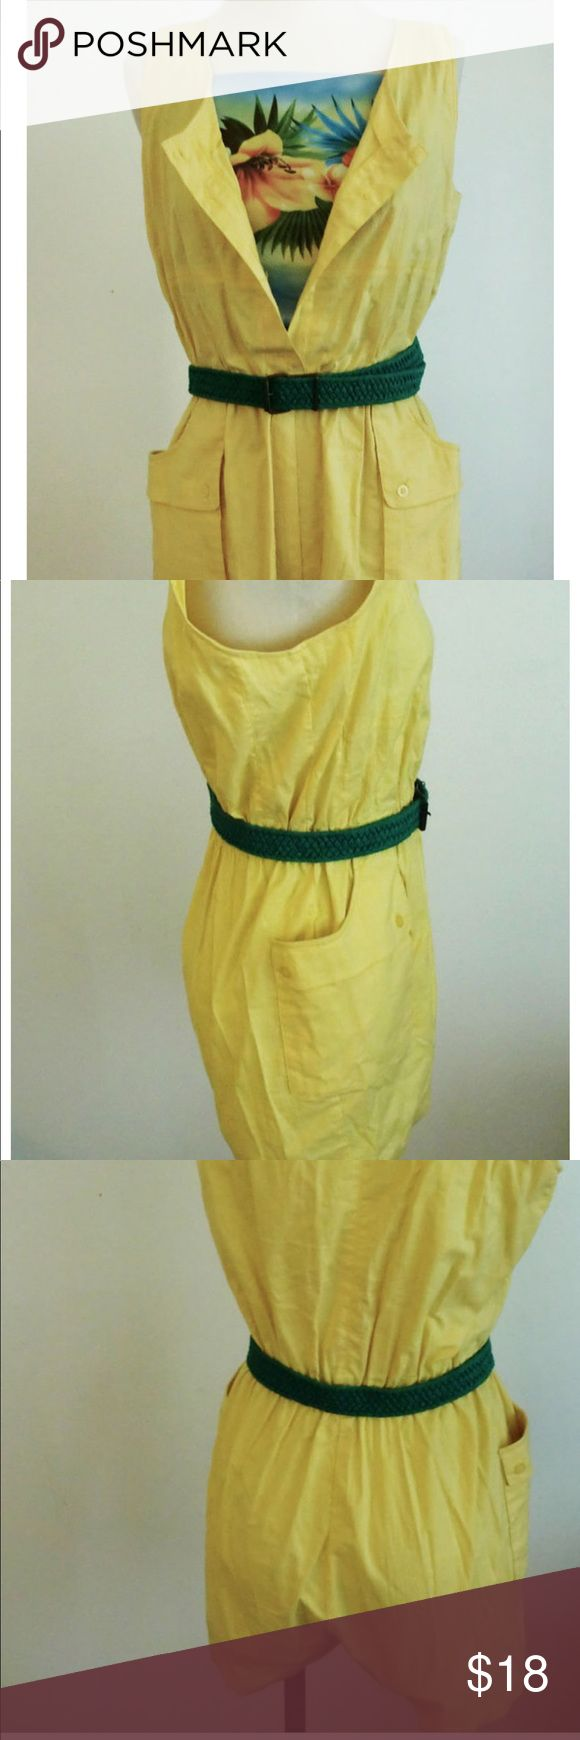 """VINTAGE Canary Yellow Romper Playsuit Beautiful yellow light cotton fabric with an elastic waist, buttons up the front, and side pockets. Bottom portion are shorts.     Cool linen feel of the fabric is perfect for comfort in the hot weather!    Made by Cest Joli.     Tag says size L but check measurements please (laying flat):    Armpit to armpit- 18 1/2""""  Shoulder to bottom hem of shorts- 33""""  Waist (elastic portion)- 14"""" and 19"""" max stretched    *Sorry, belt and Hawaiian undershirt not…"""